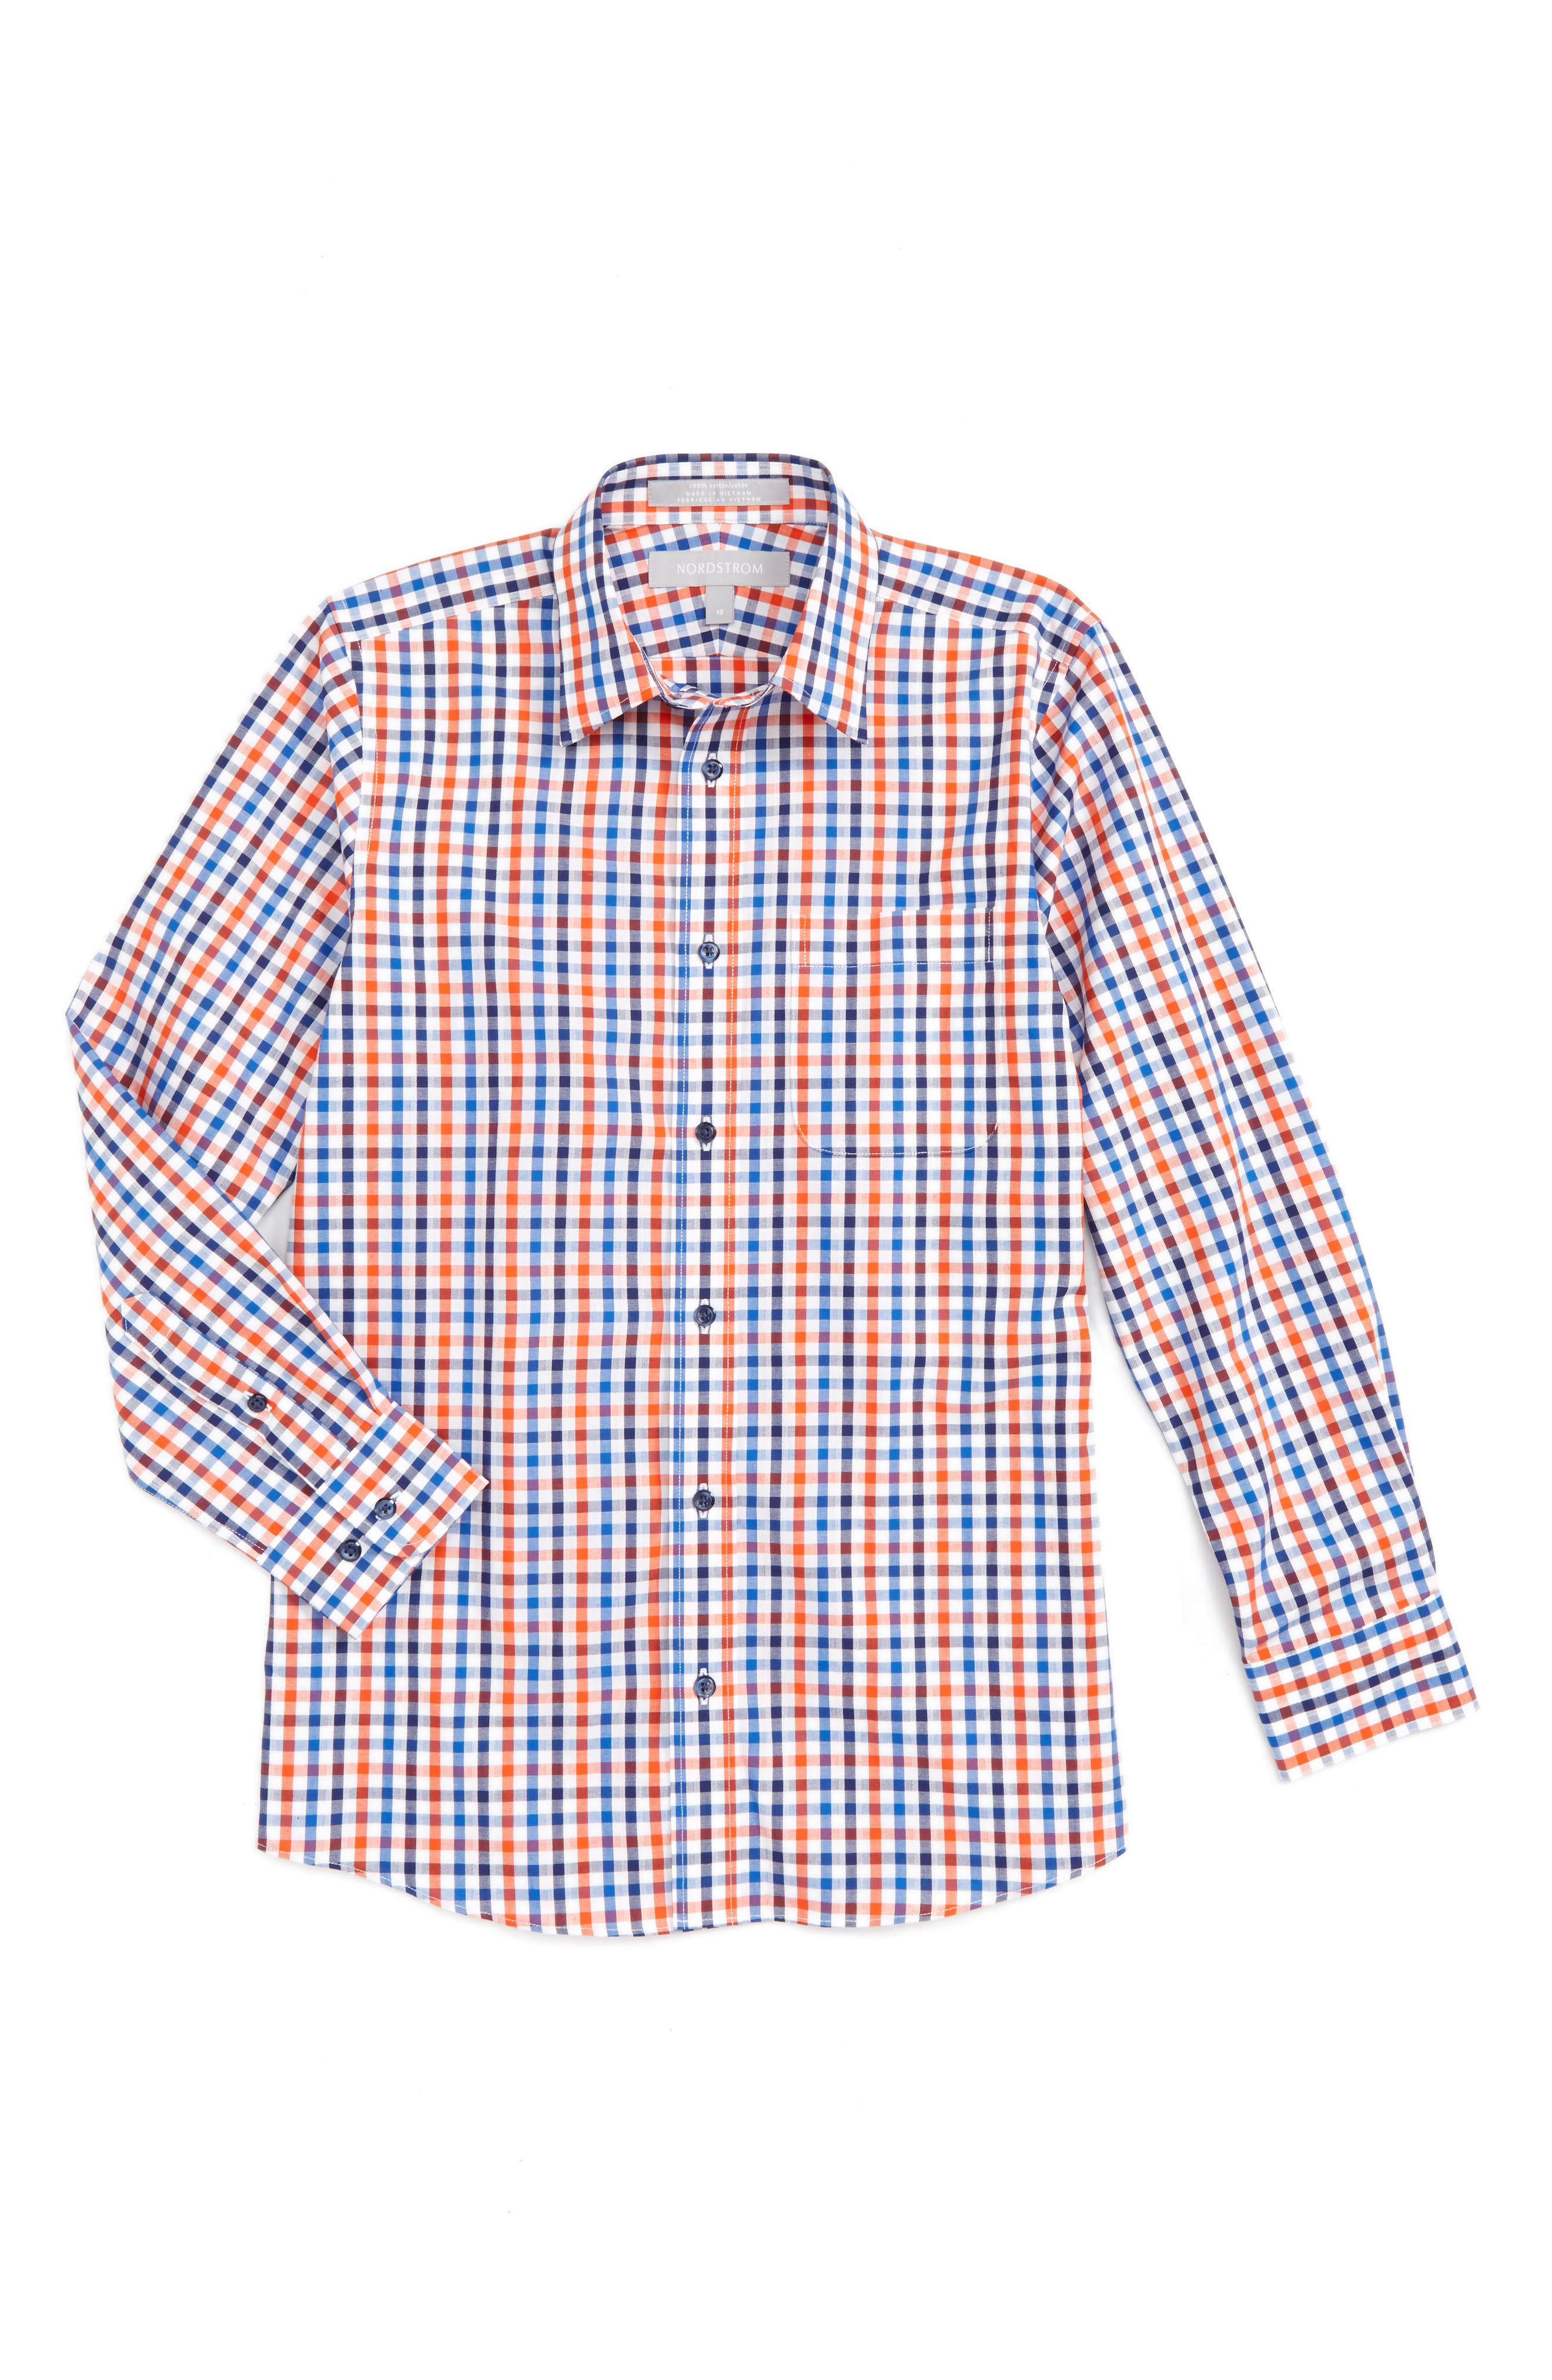 Nordstrom Plaid Woven Shirt (Toddler Boys, Little Boys & Big Boys)